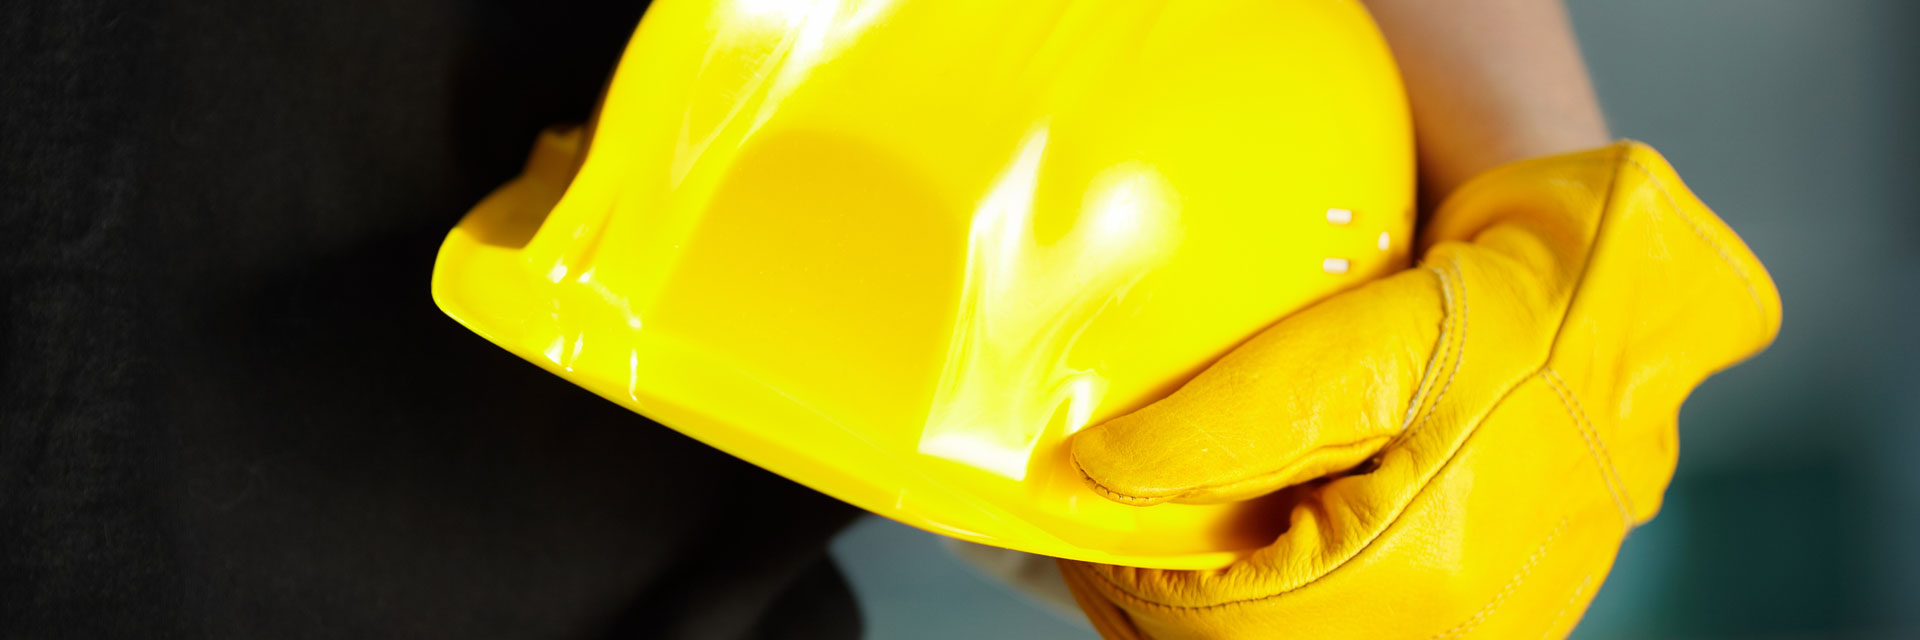 Yellow hard hat and gloved hand.